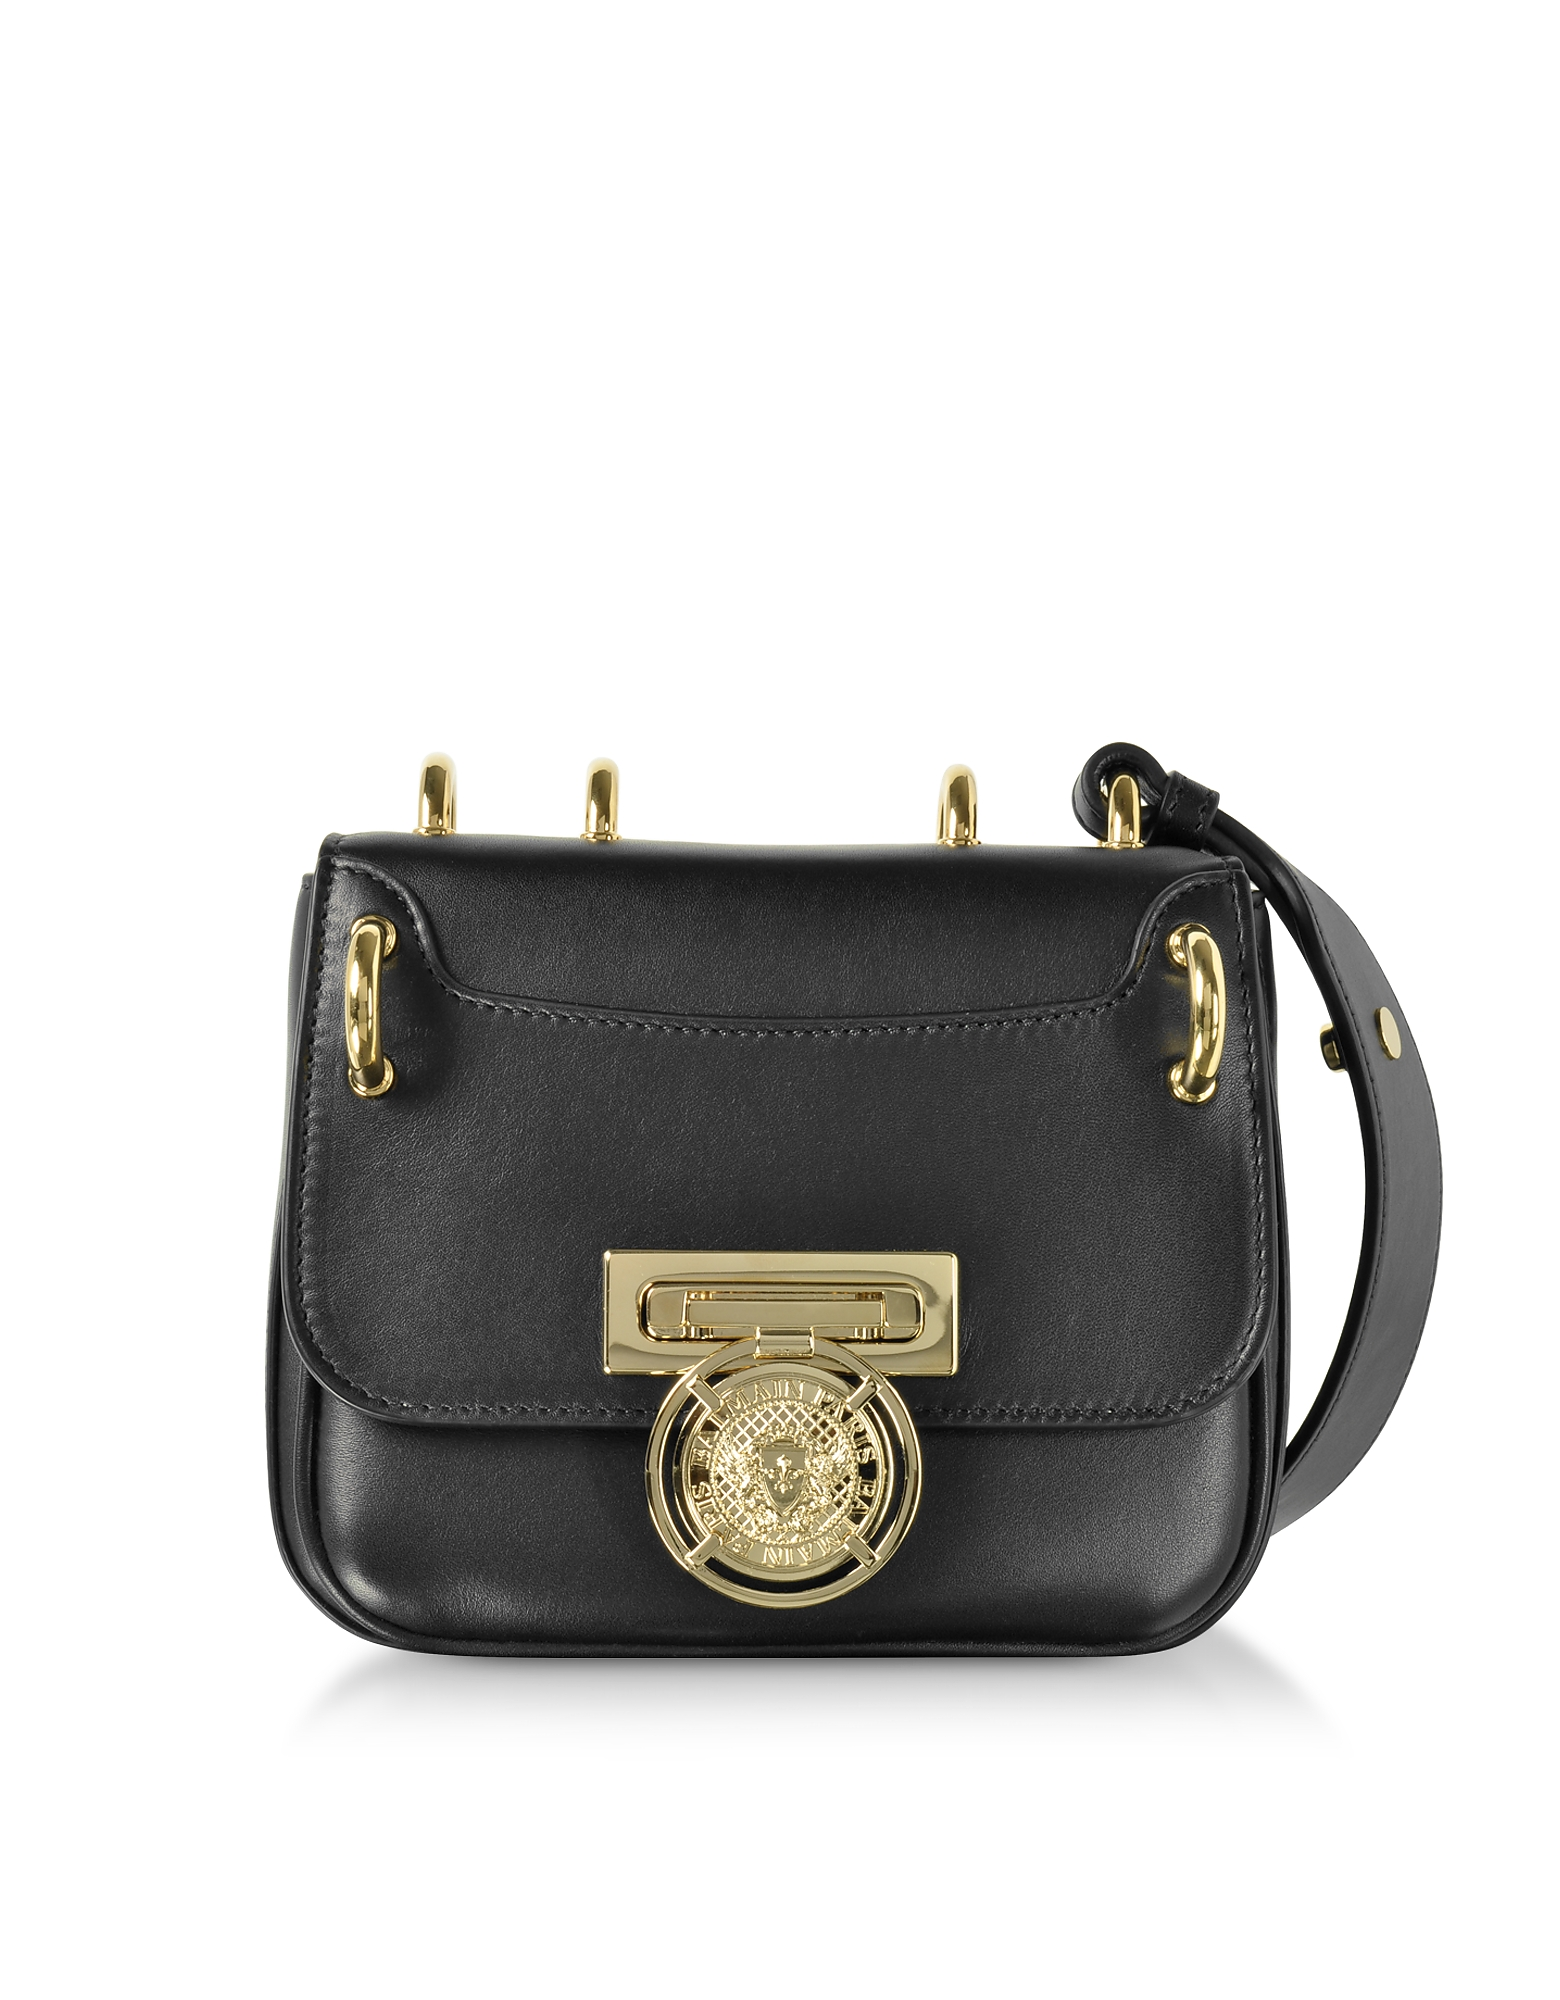 Balmain Handbags, Renaissance 18 Glove Black Leather Small Shoulder Bag